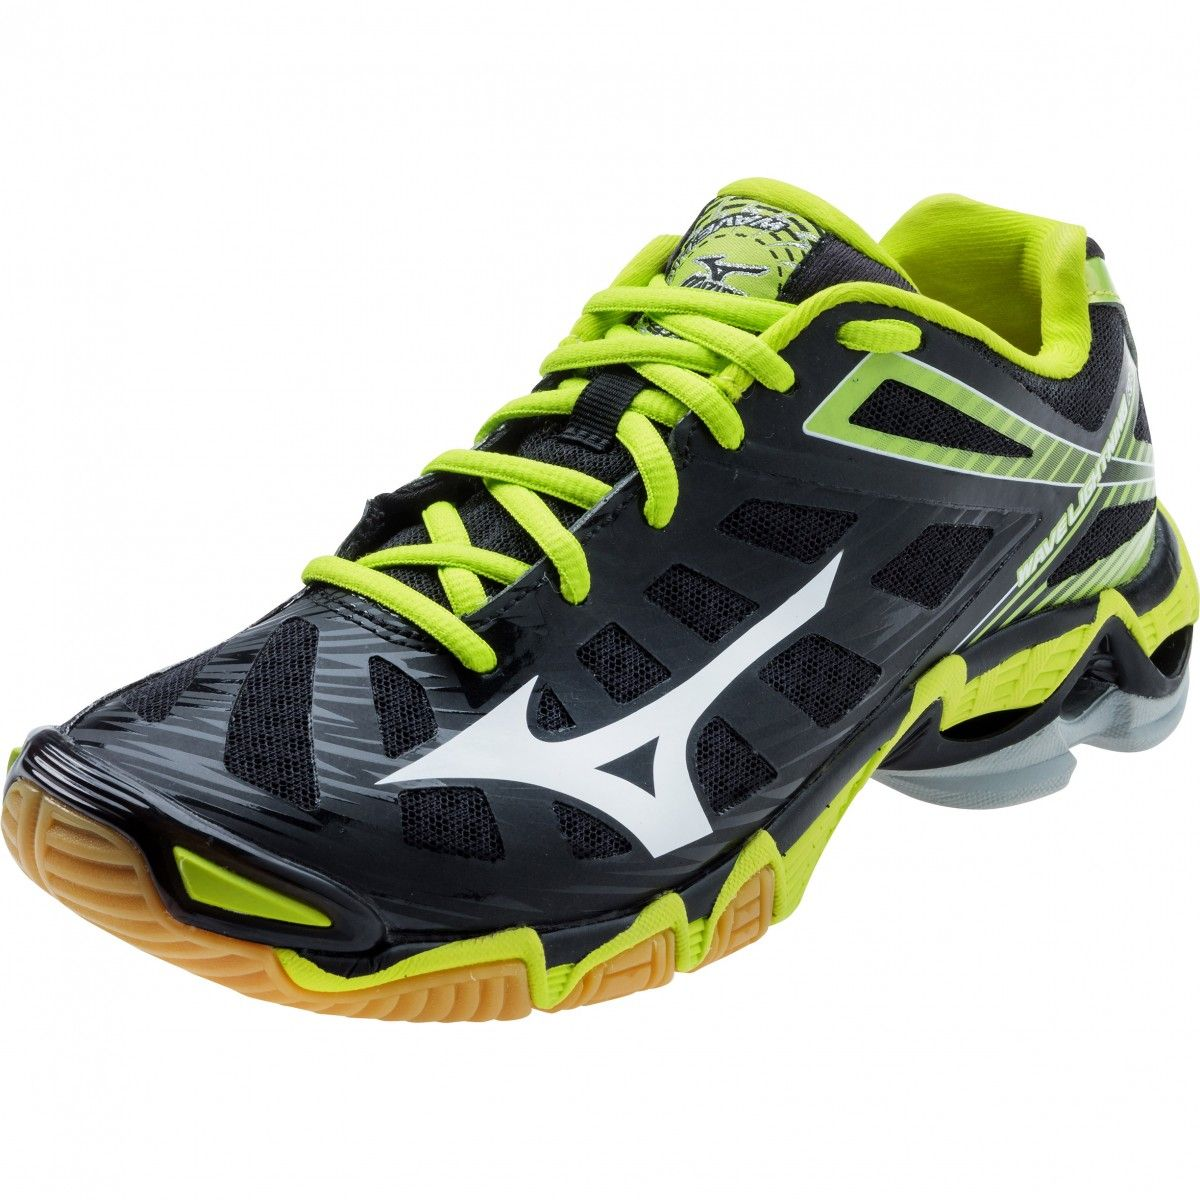 Mizuno Wave Lightning Rx3 Women S Volleyball Shoes Black Lime Best Volleyball Shoes Volleyball Shoes Women Volleyball